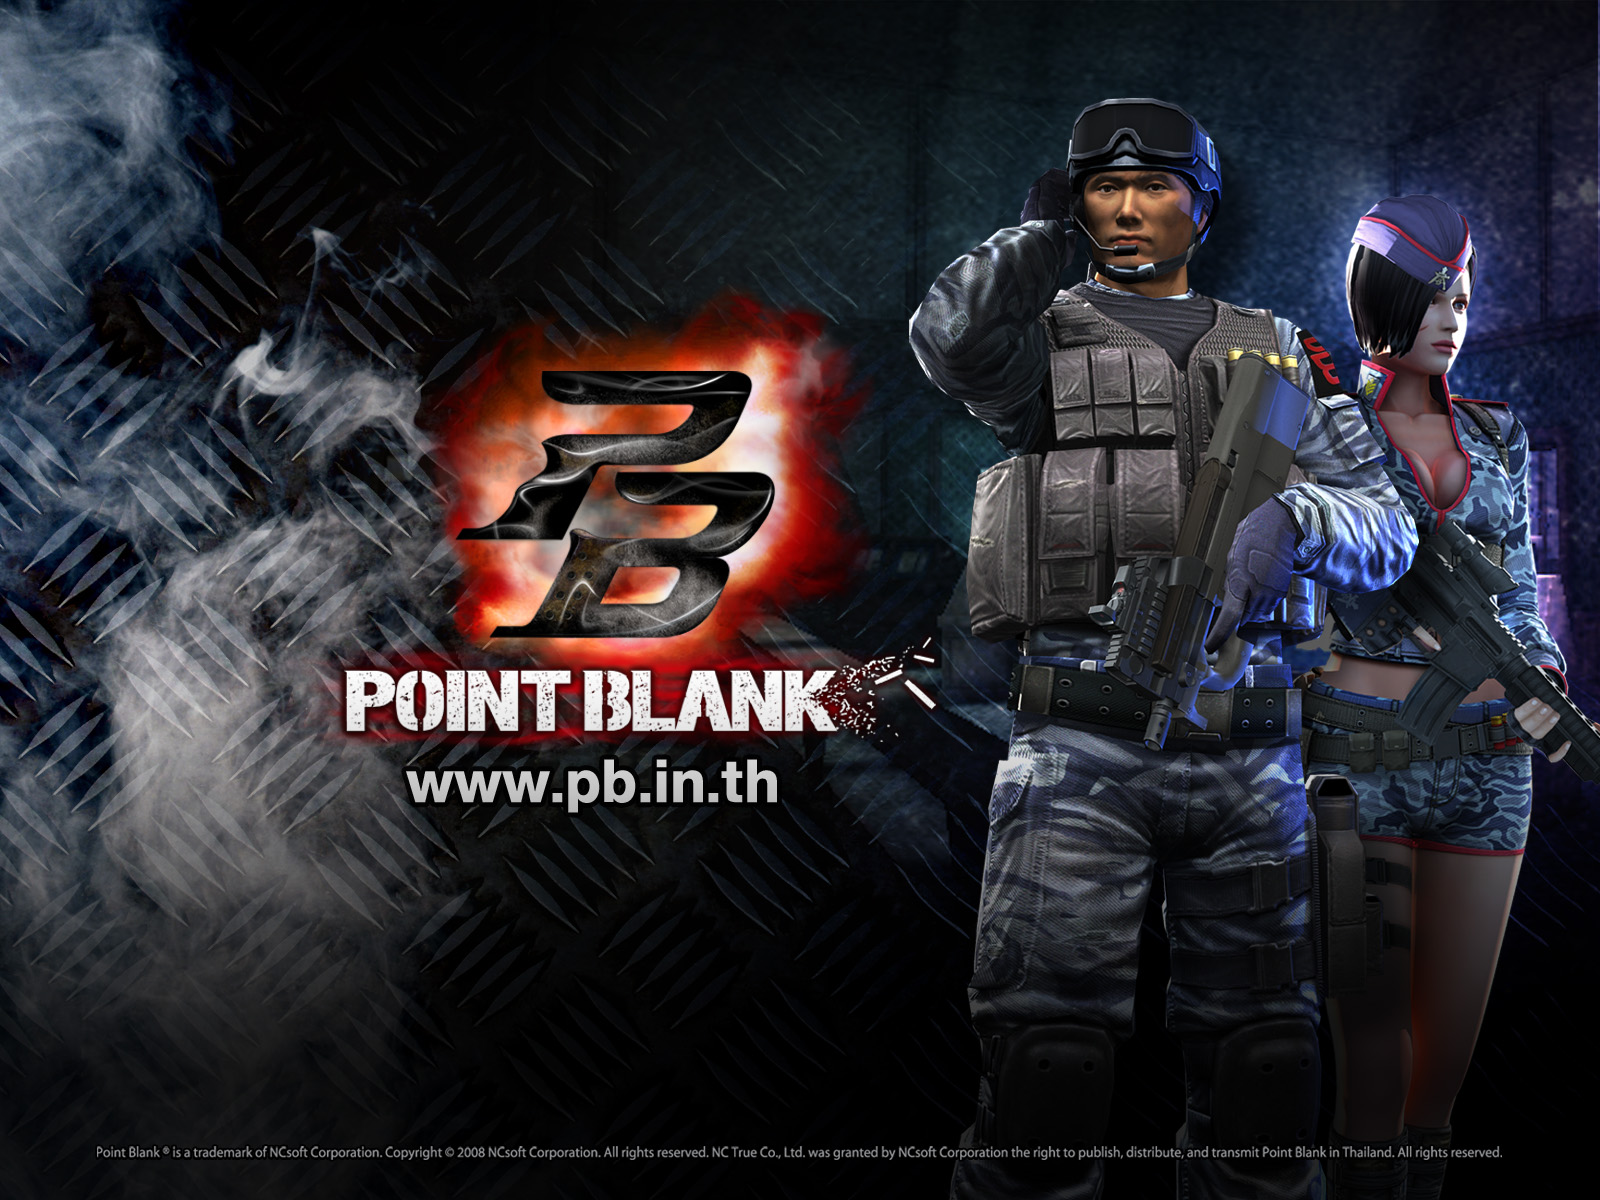 cheat point blank map hack grd 1 2 baca juga cheat rinocomp terbaru di